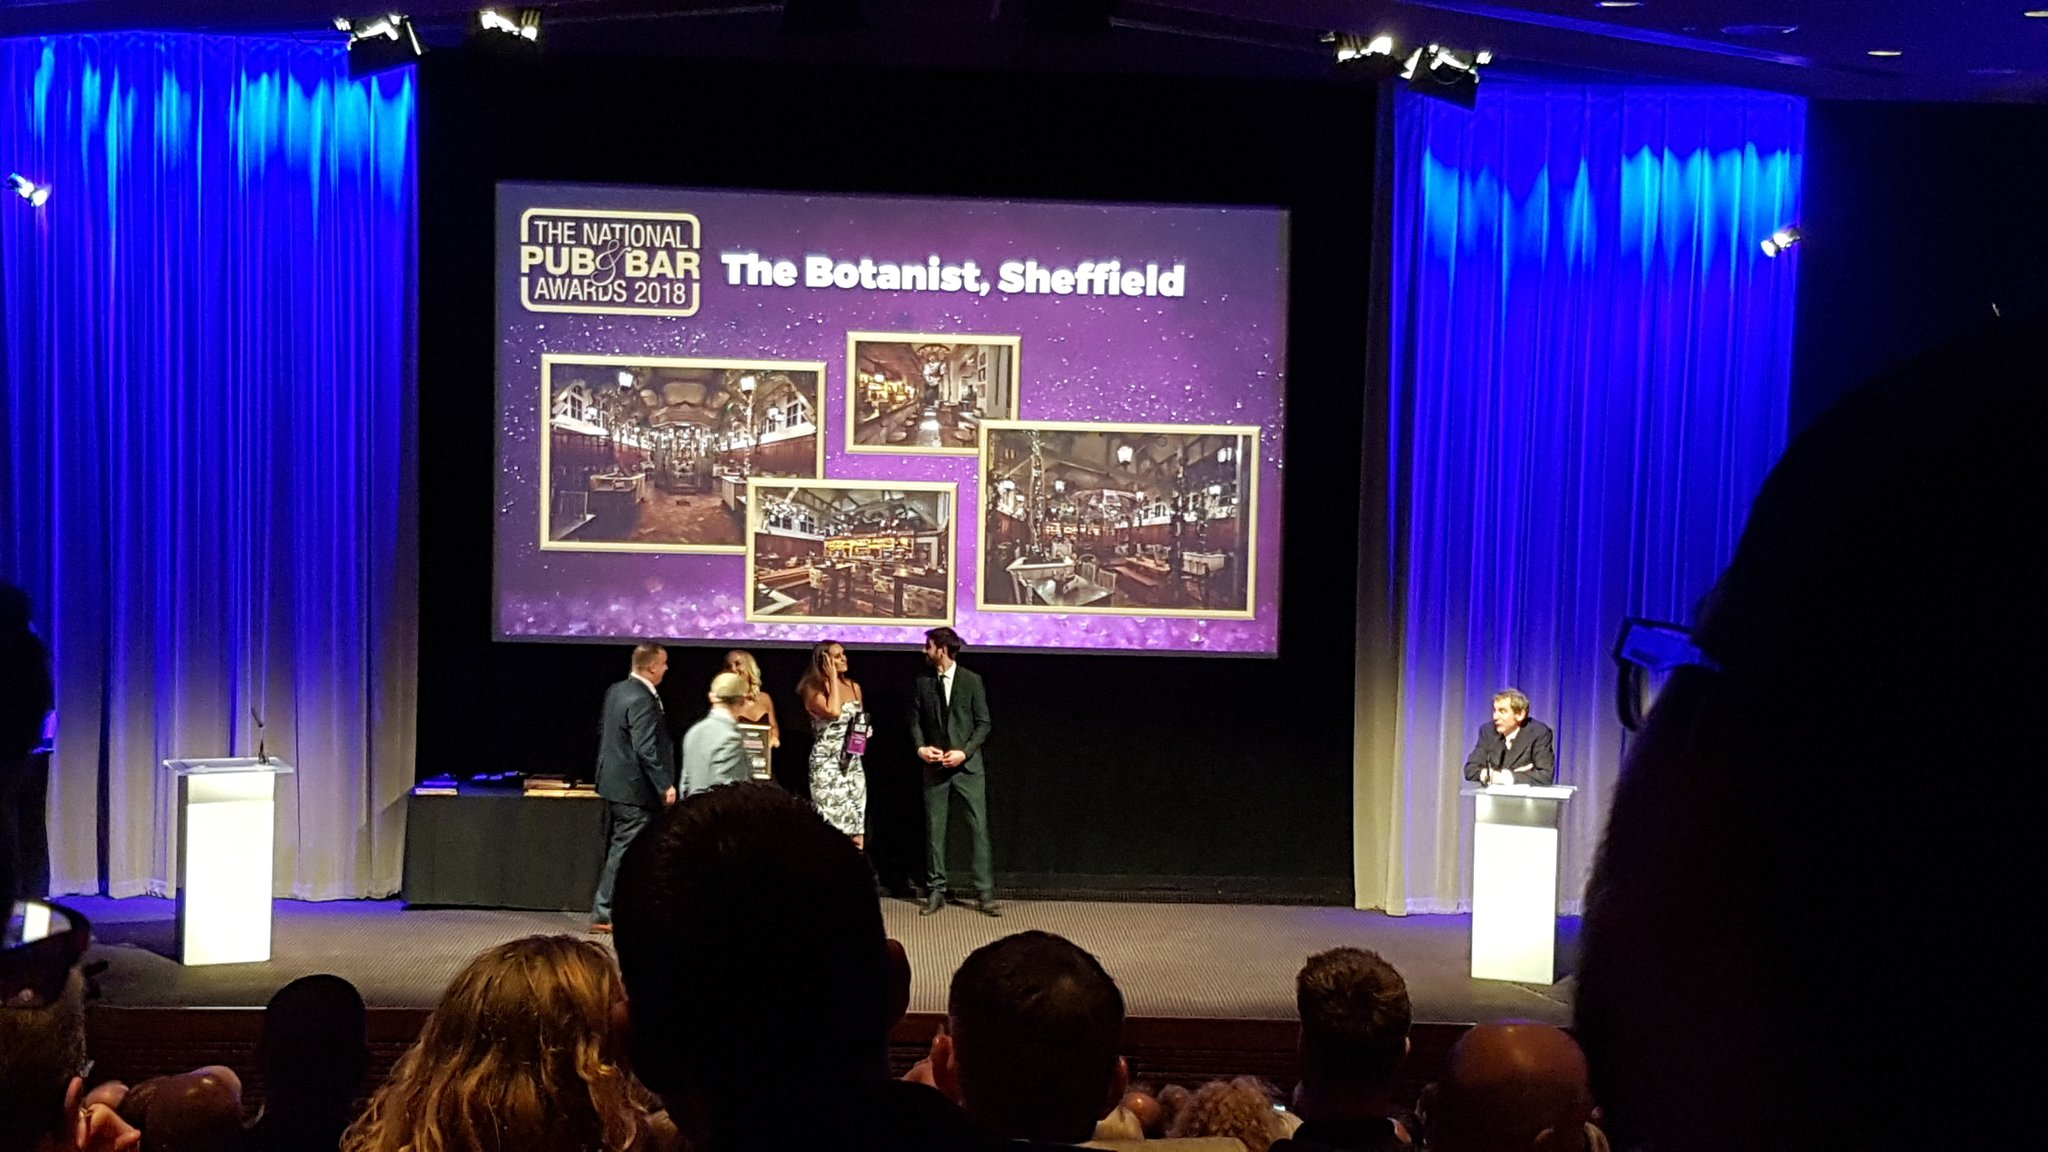 Congrats to @TheNWTC and the @thebotanistuk Sheffield for their regional win! #PubAndBarAwards https://t.co/AS6tmYahre